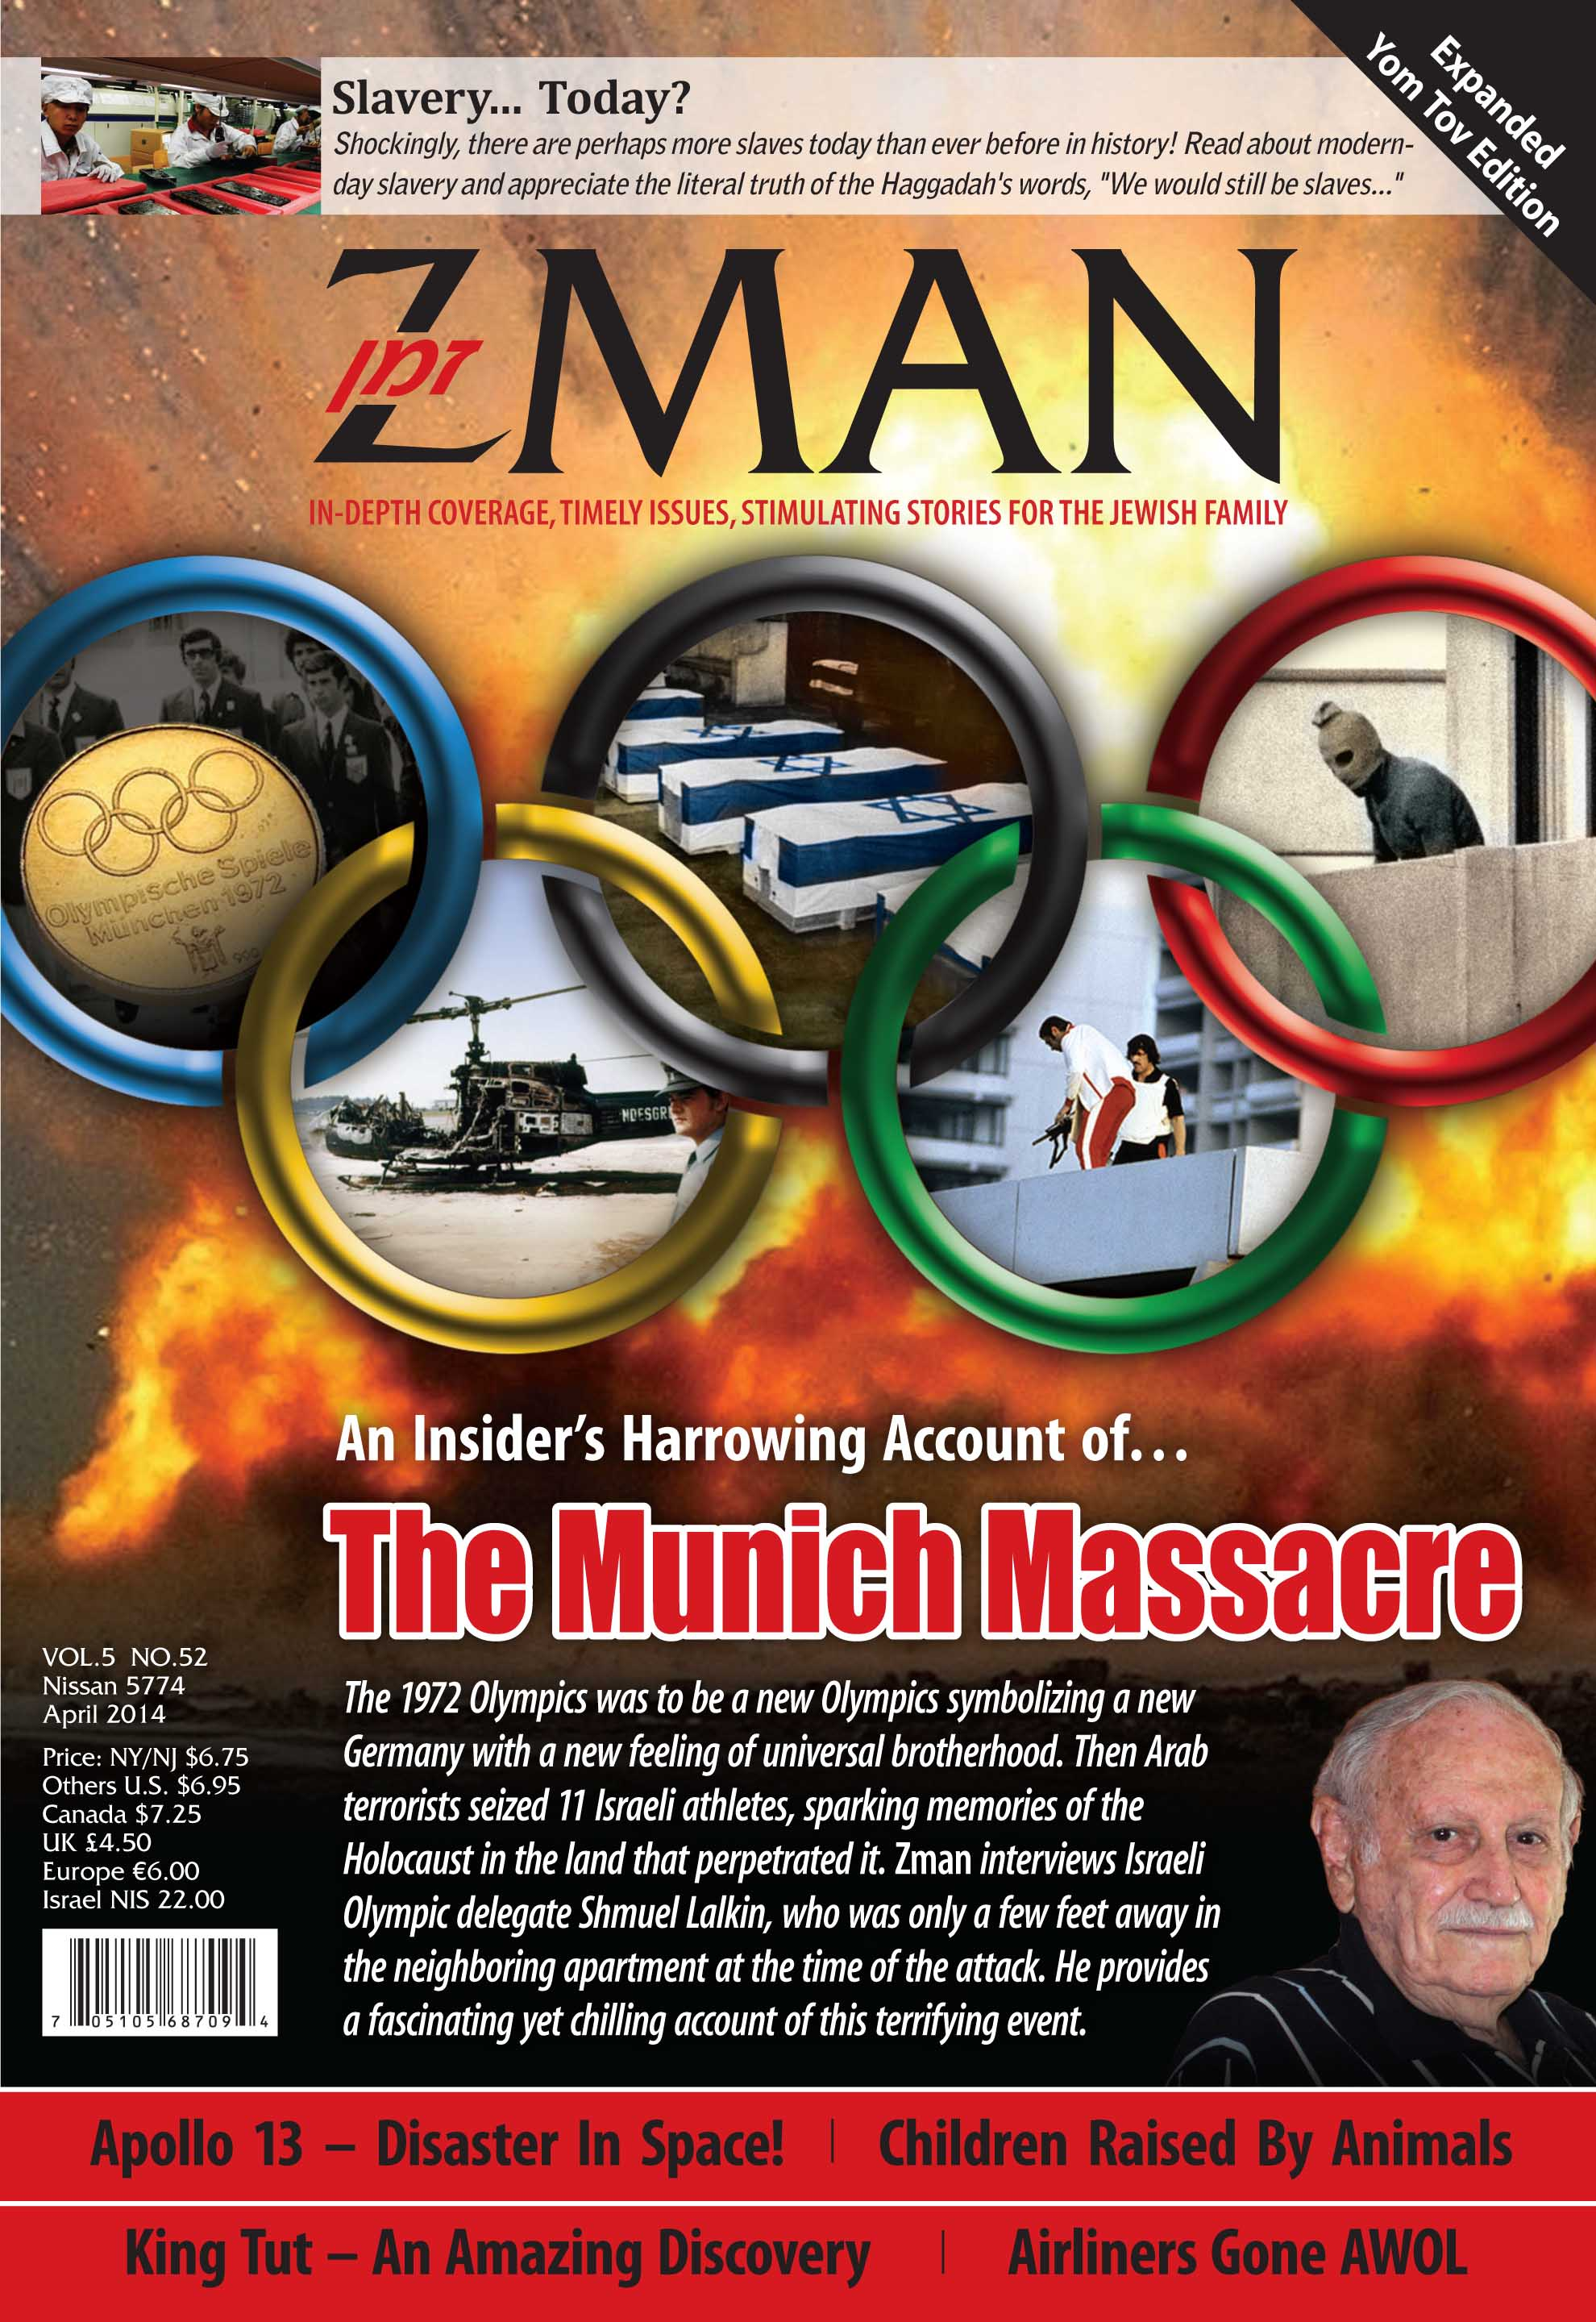 A production created by the Zman Magazine, Züsman is a live dramatic stage performance directed towards the Jewish community. An emotional story about a cour.